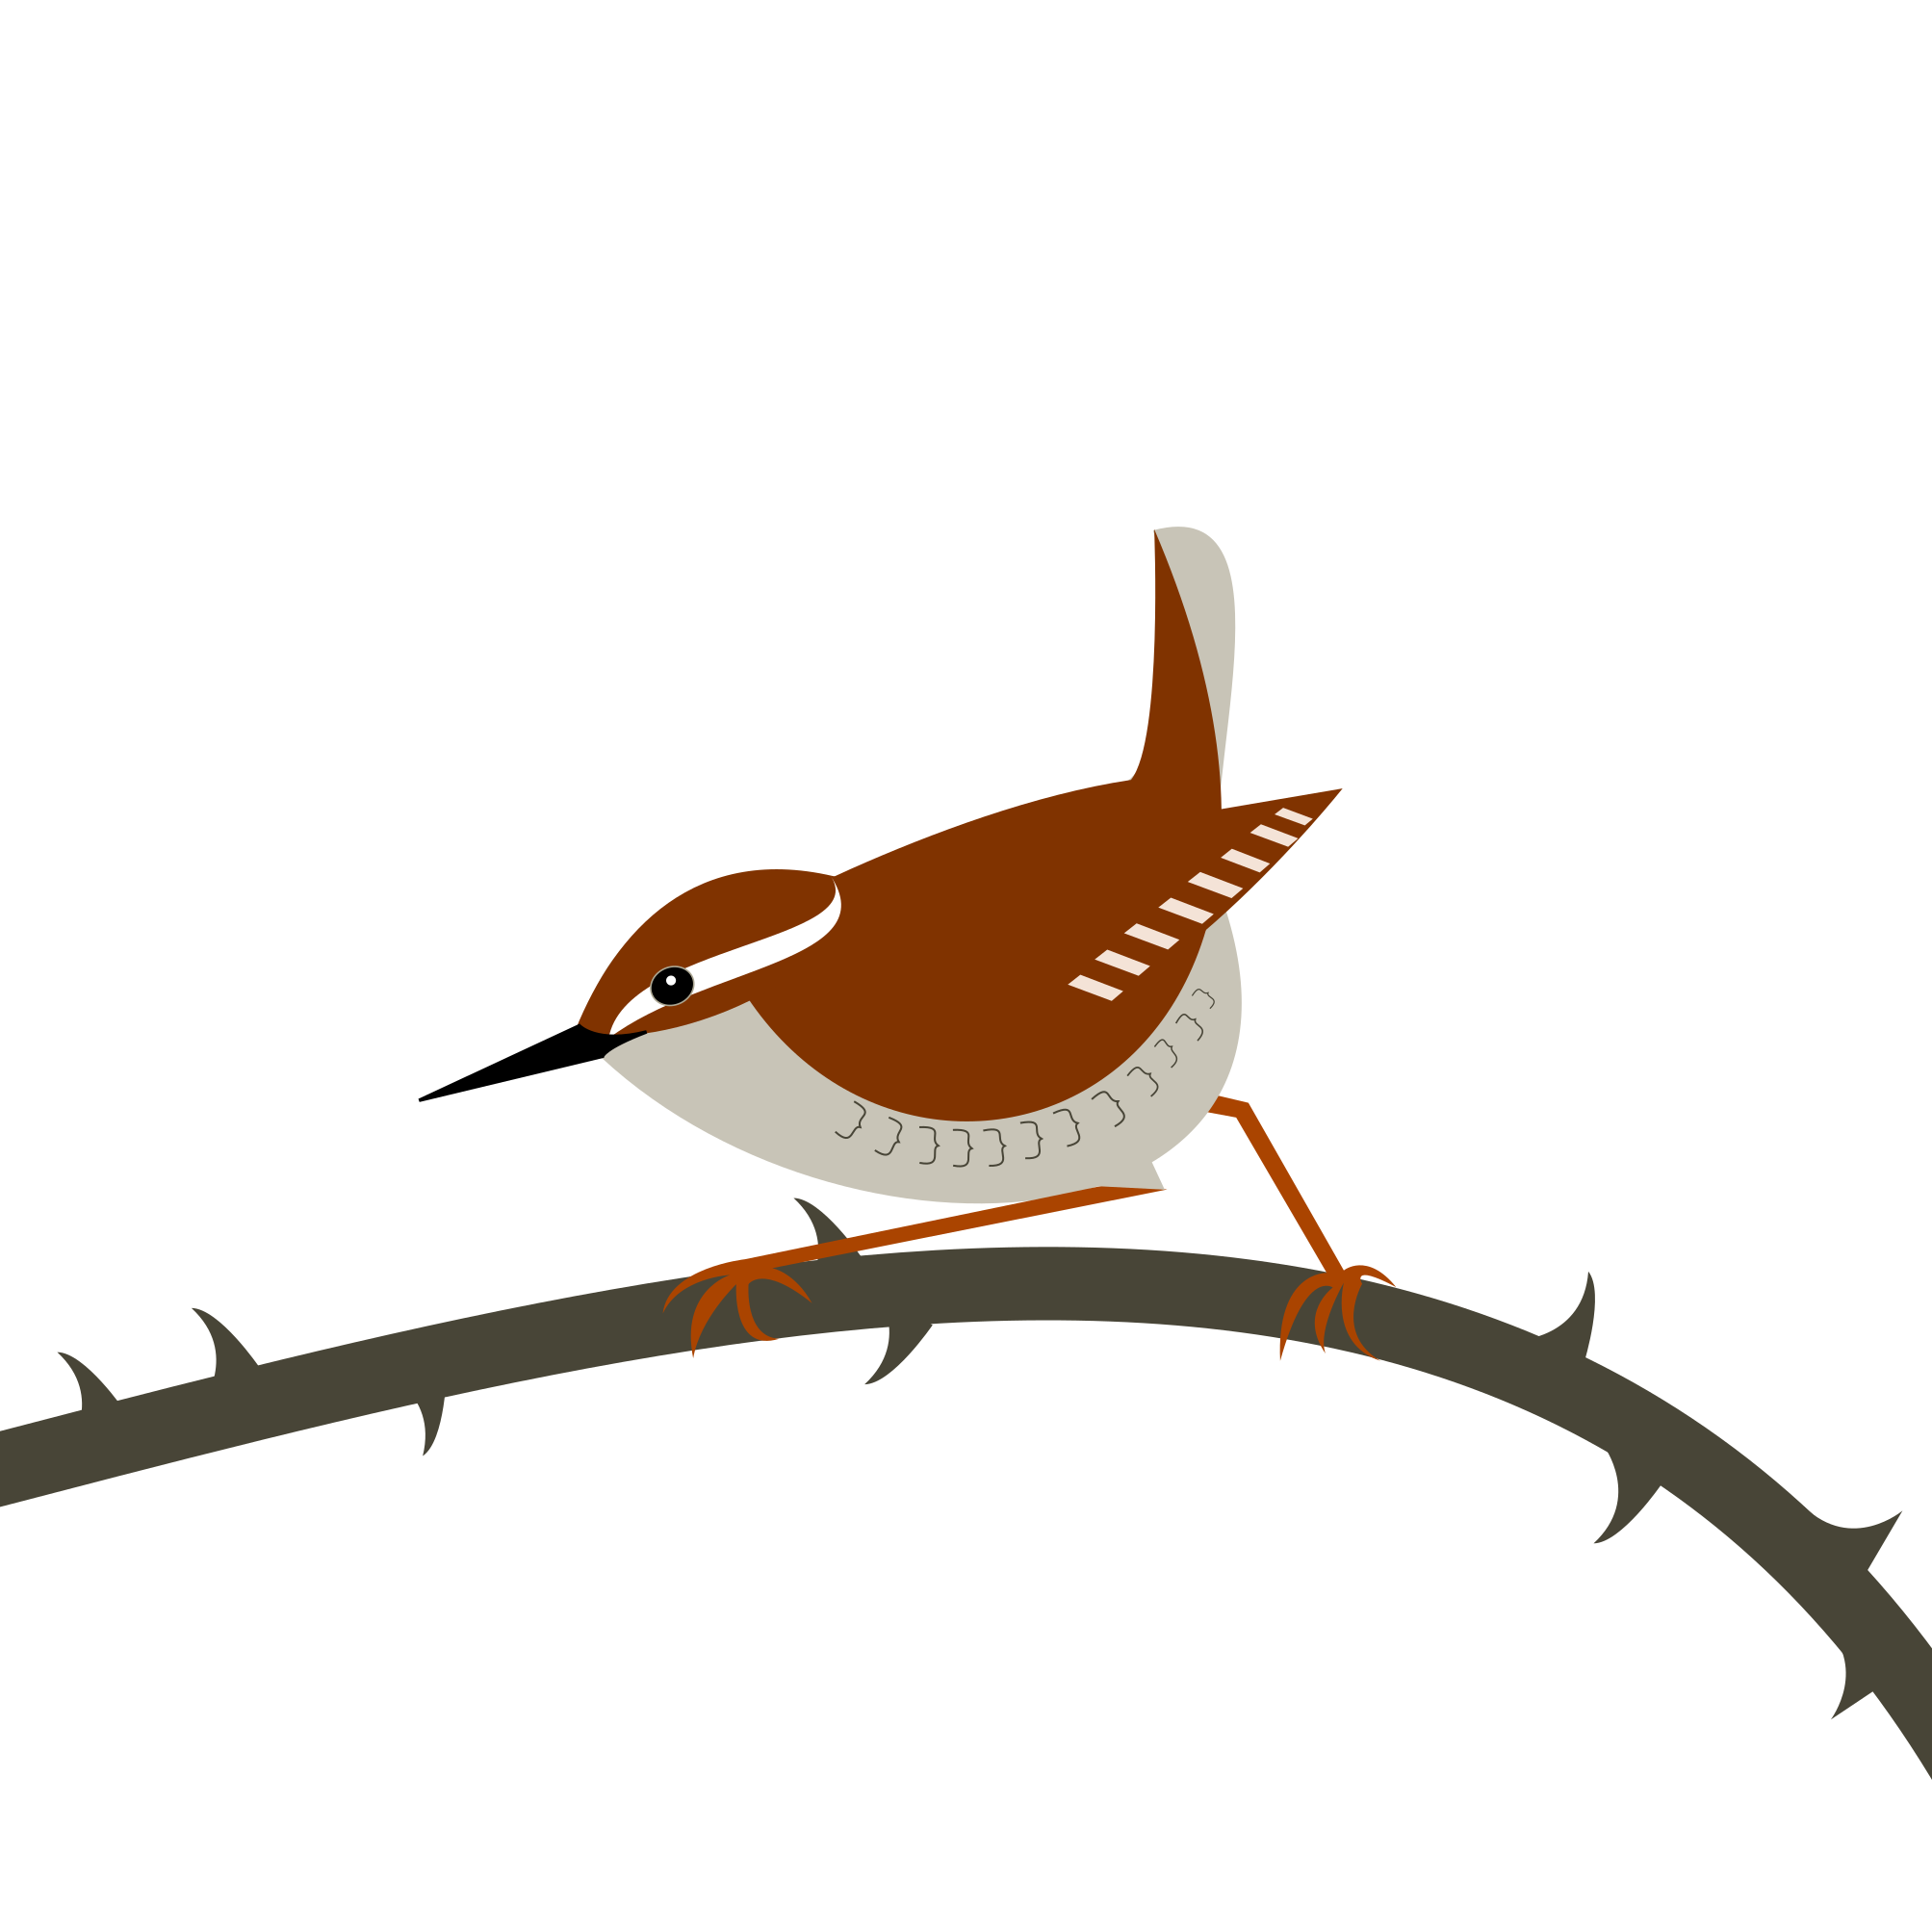 a wren perching on a grey thorny branch. Simply drawn with flat bold colours on a white background